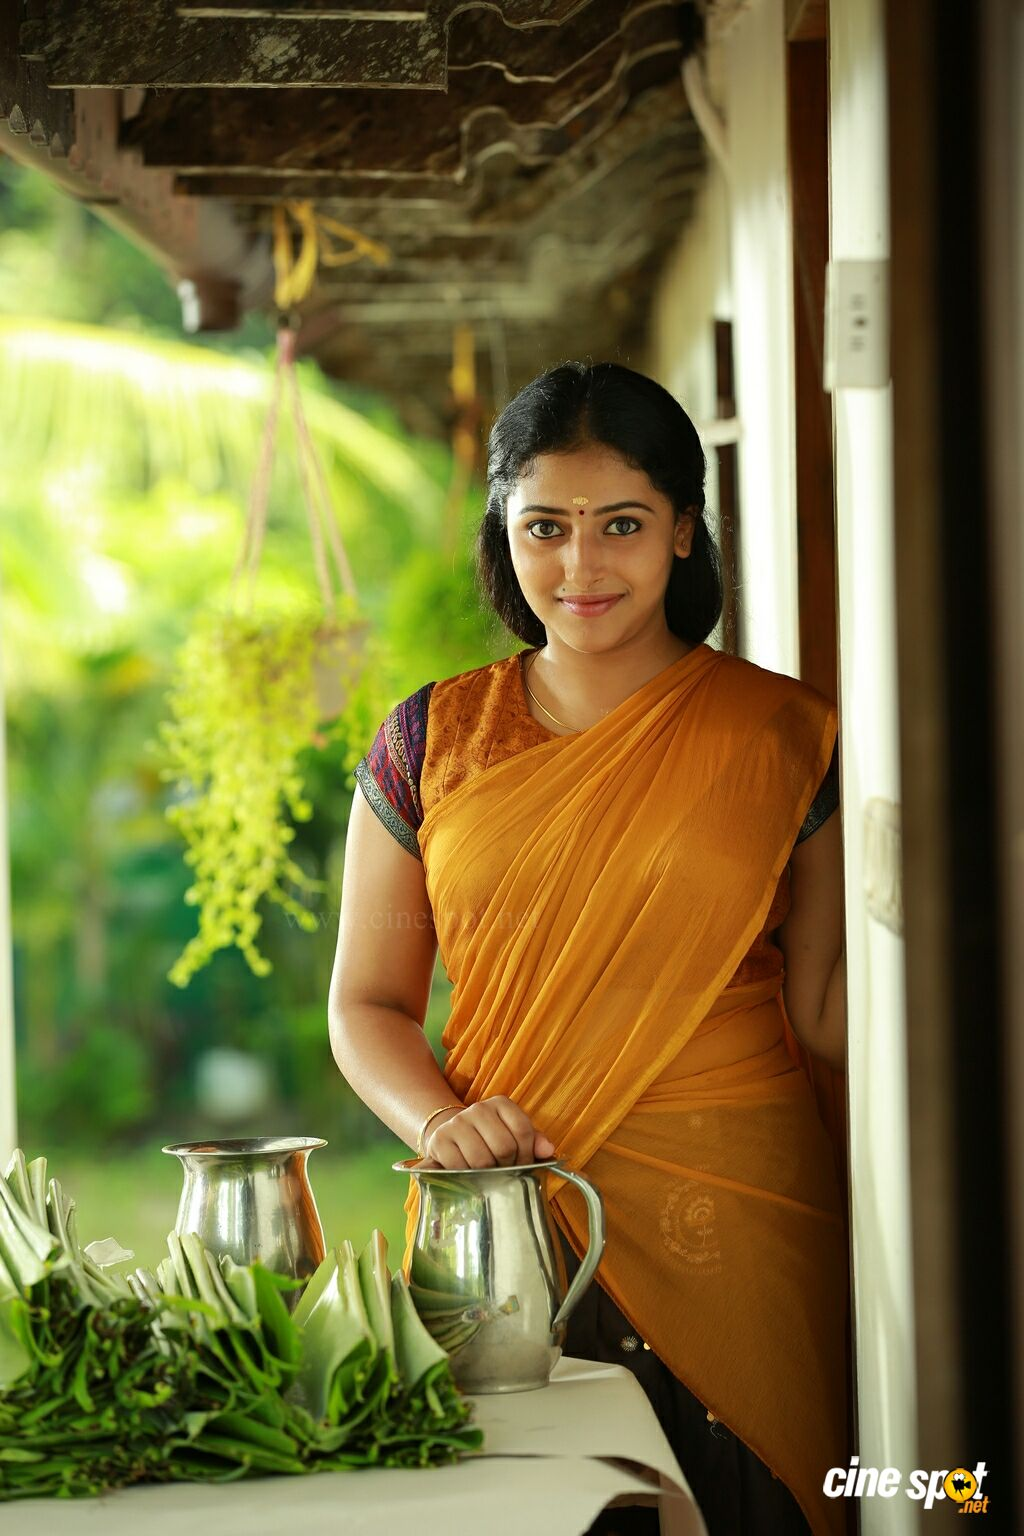 sithara charlottesithara indian restaurant, sithara actress, sithara charlotte, sithara singer, sitara restaurant, sithara kodali, sithara nair, sithara meaning, sithara movie, sithara serial, sitara menu, sithara actress husband, sitara shetty, sithara songs, sithara actress daughter, sithara rasheed, sithara indian restaurant menu, sitara indian cuisine, sithara nambiar, sithara reddy